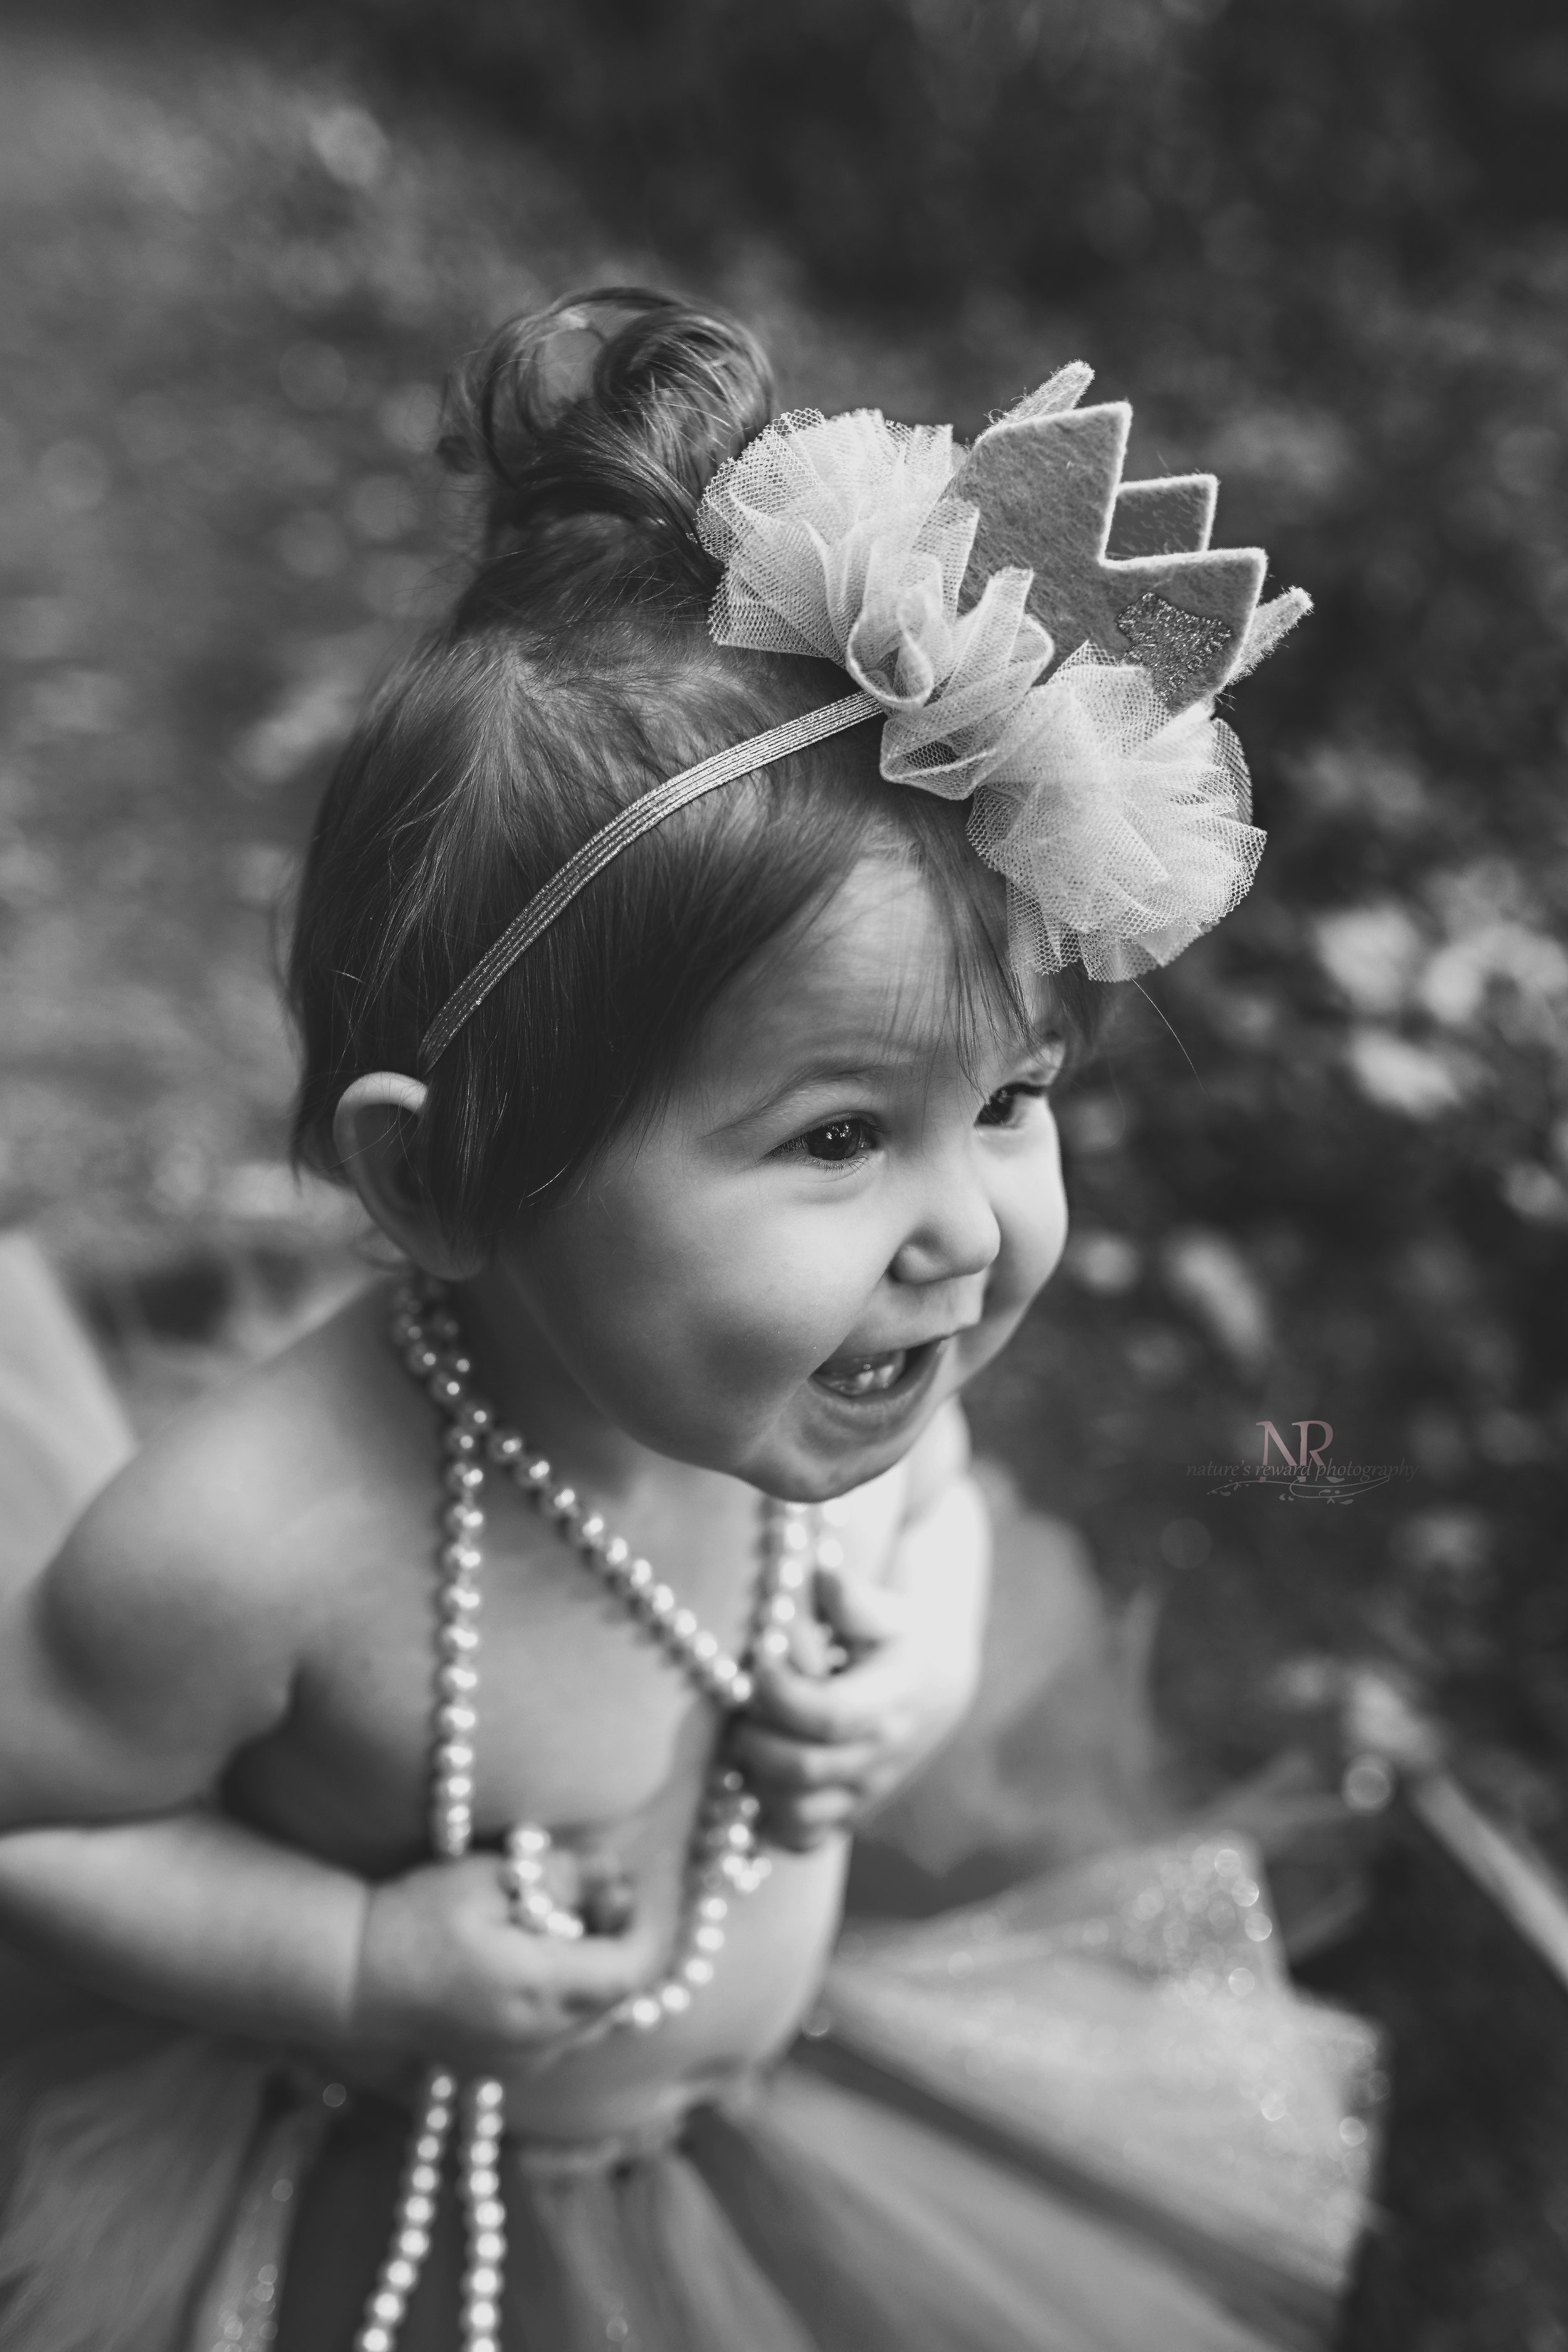 Her belly laugh in pearls